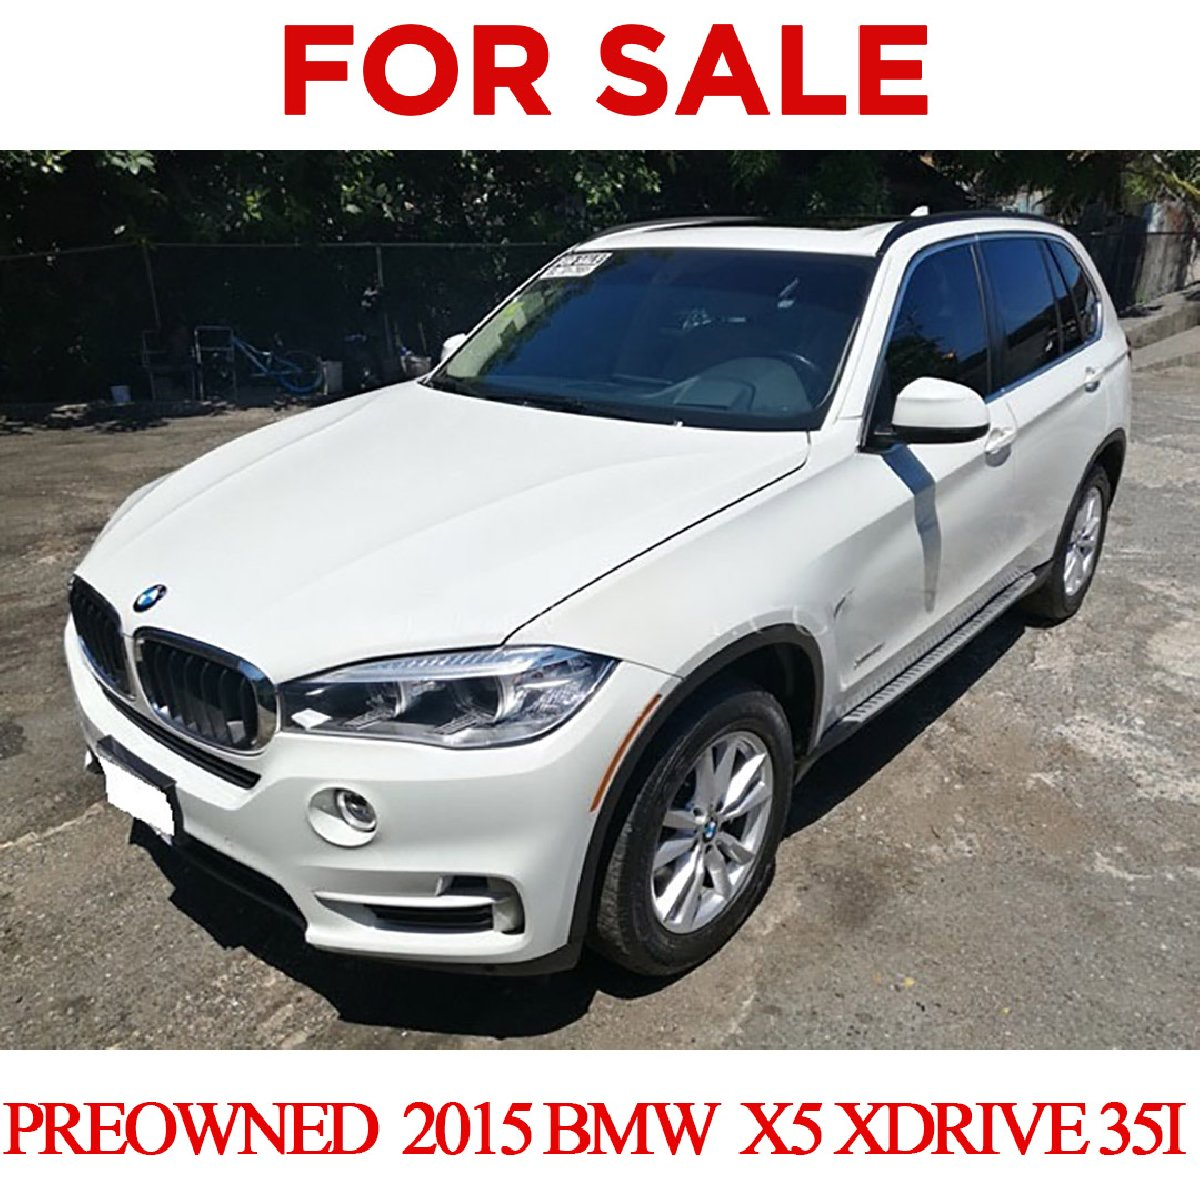 Bmw Z5 For Sale: Preowned 2015 BMW X5 XDrive35i For Sale In Kingston